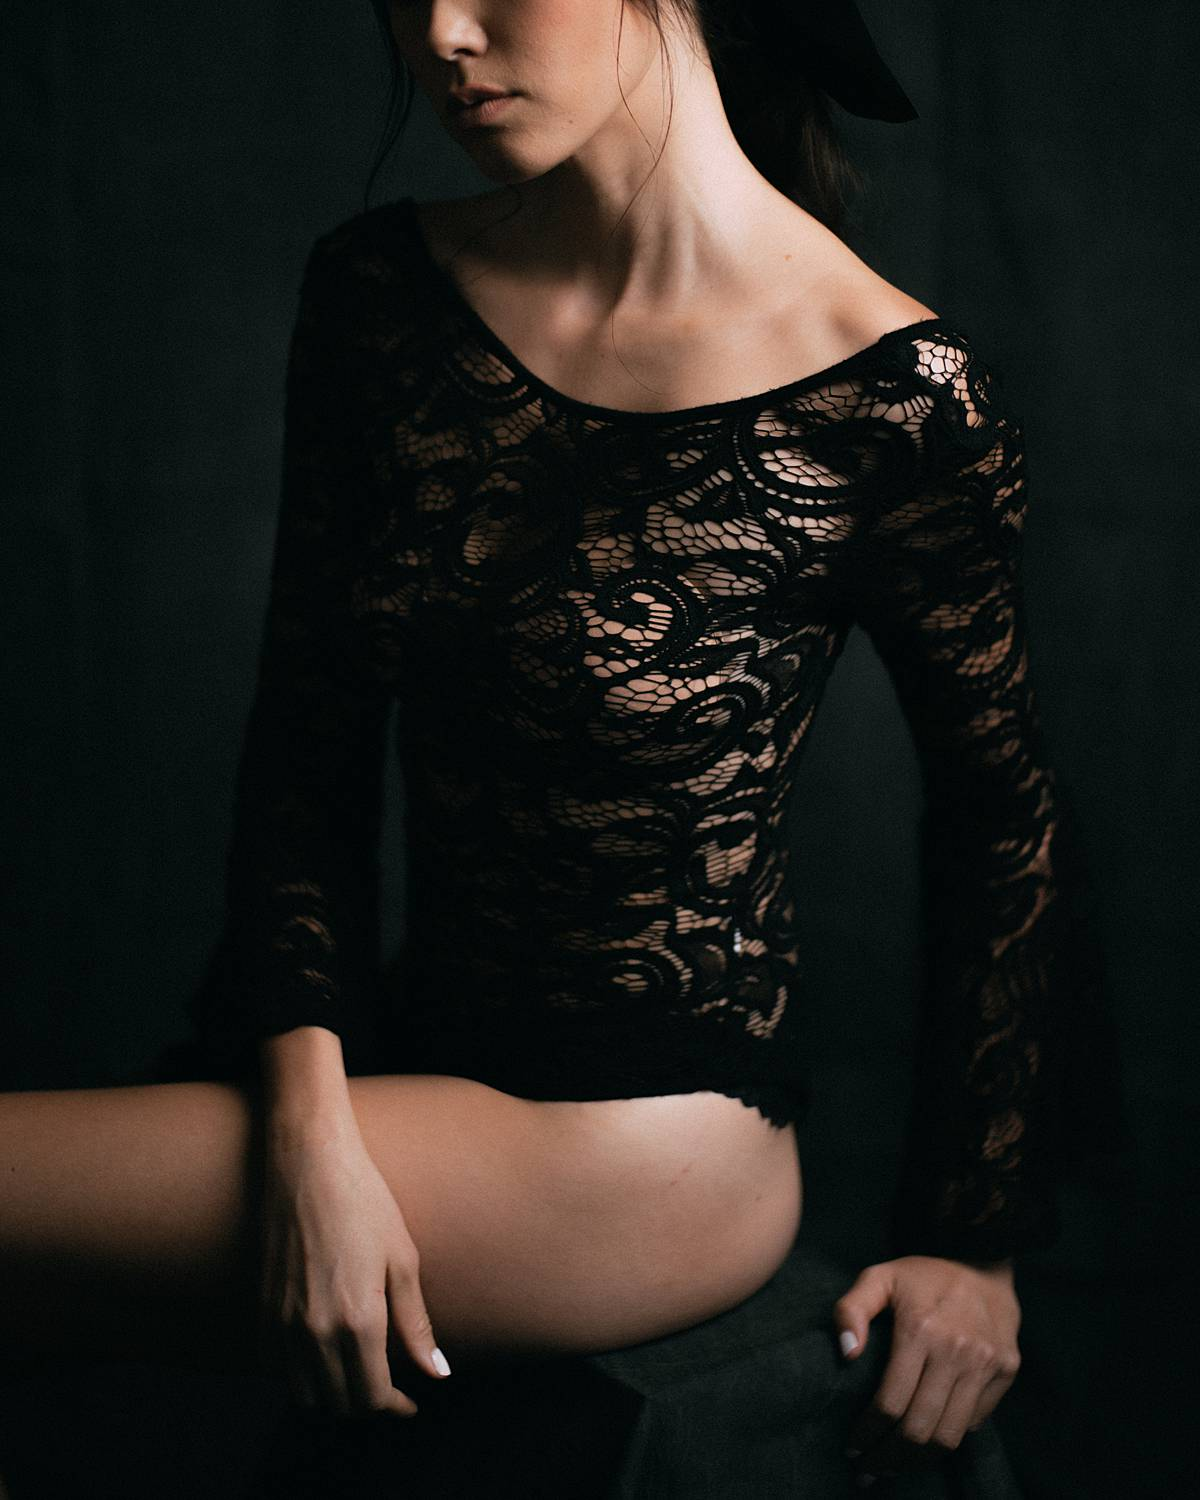 charleston studio boudoir with rembrandt lighting and grey muslin backdrop with bride in black lace longsleeve bodysuit